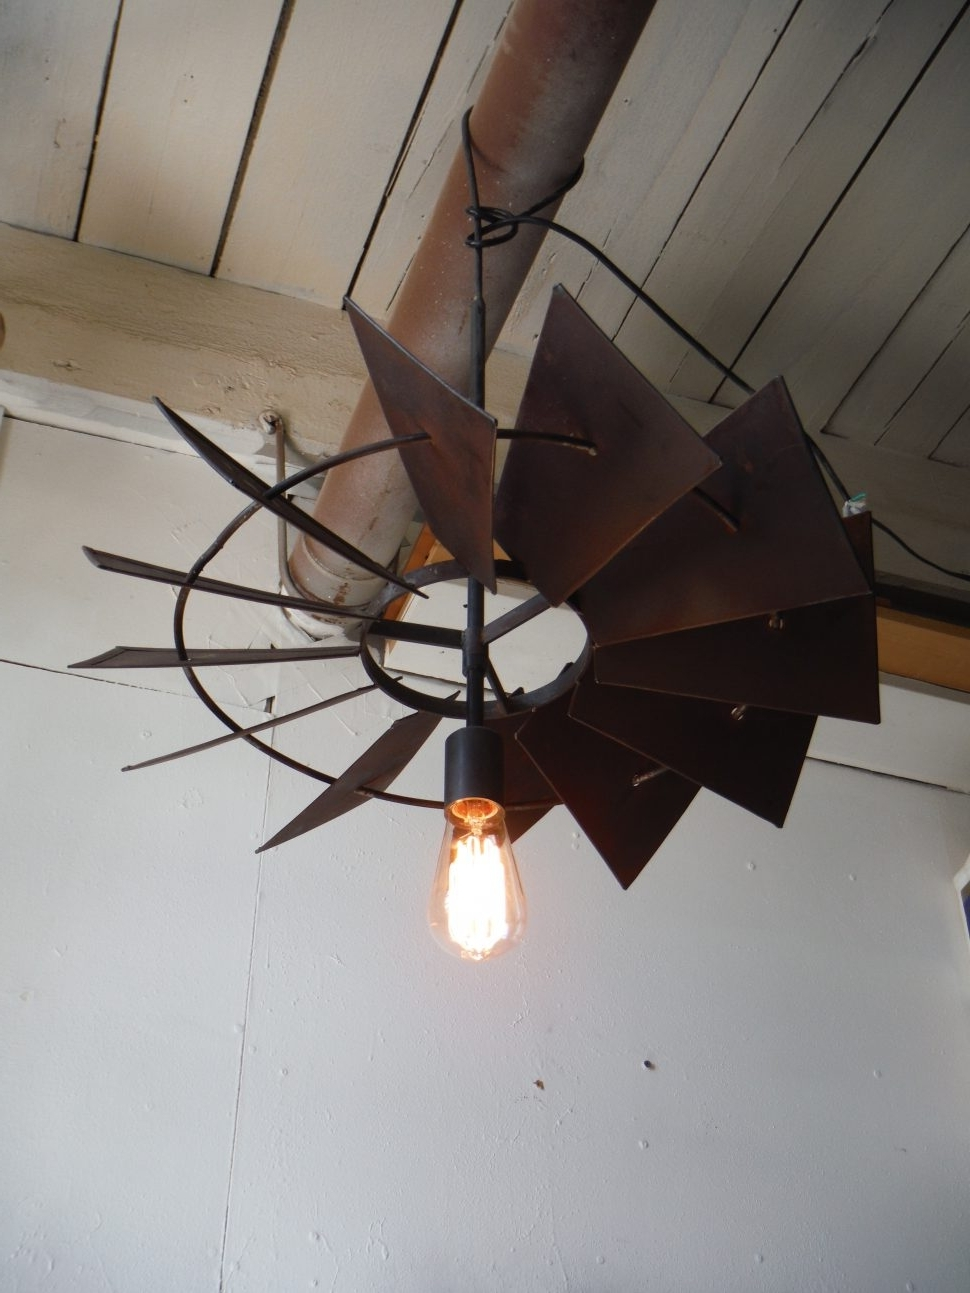 Outdoor Windmill Ceiling Fans With Light Regarding 2019 Windmill Ceiling Fan With Light Kit Great Outdoor Ceiling Fan With (View 3 of 20)